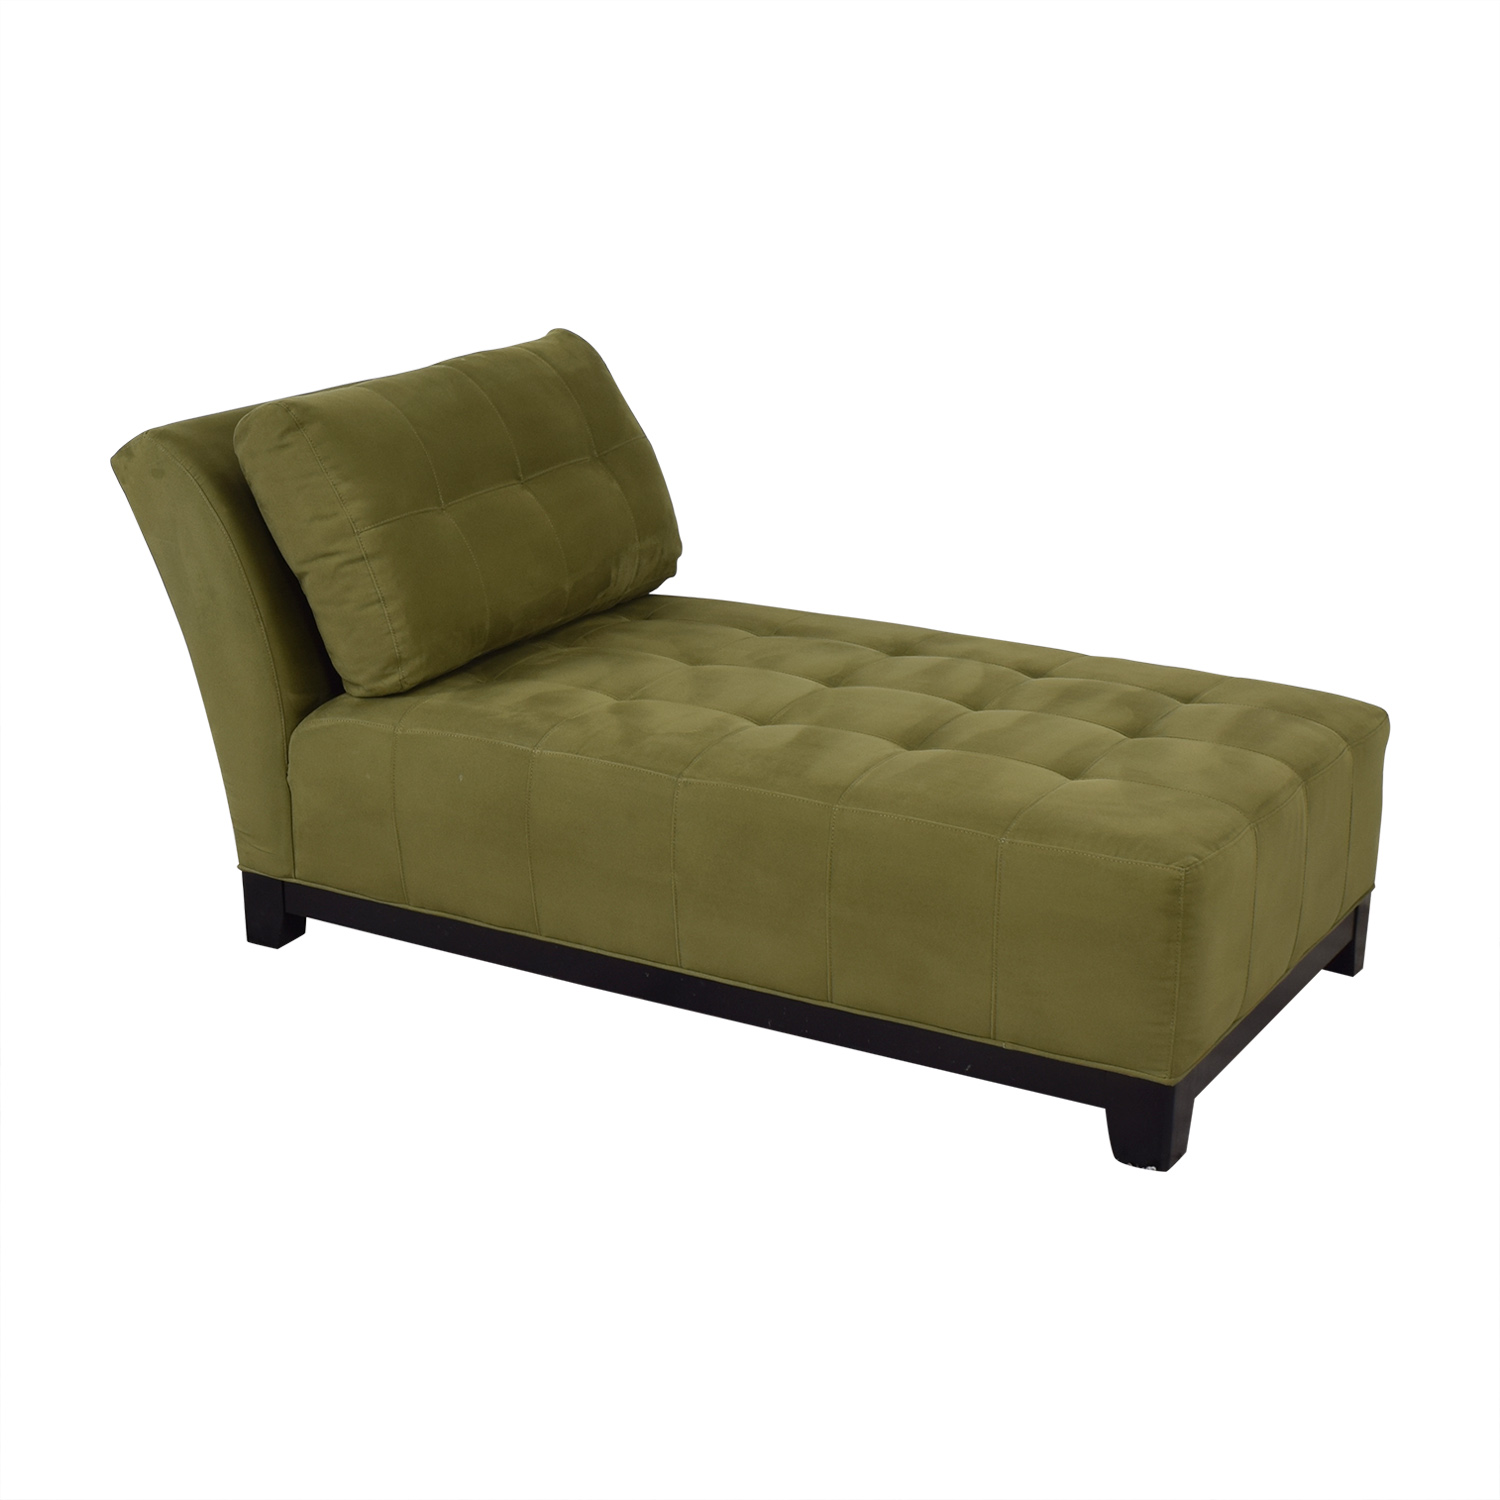 Raymour & Flanigan Raymour & Flanigan Tufted Chaise Lounge price